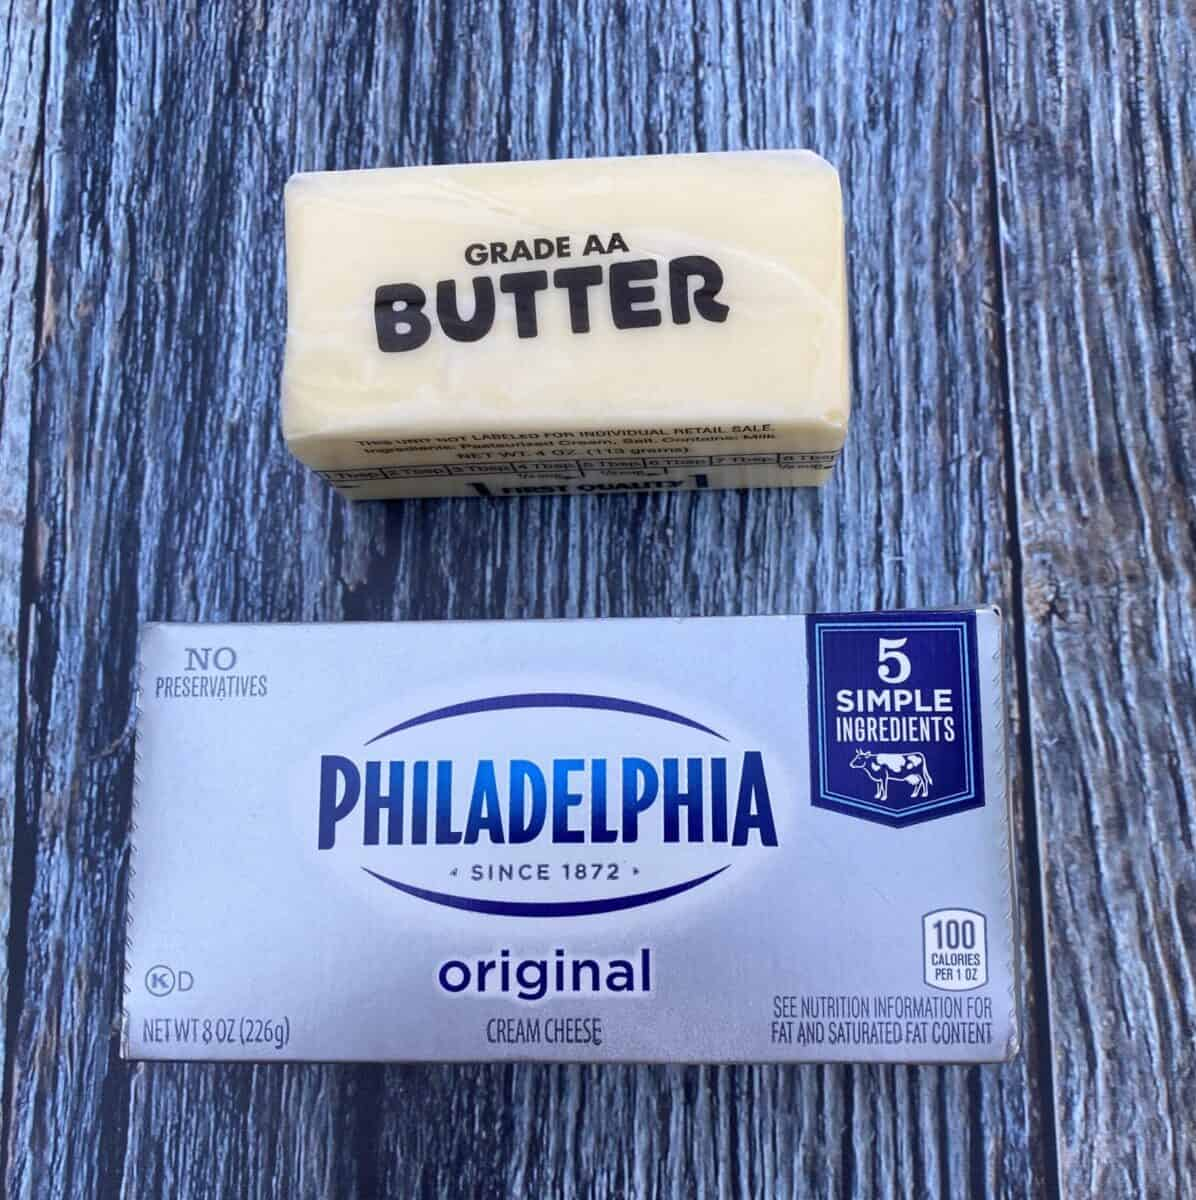 A stick of butter and a package of cream cheese on a wood block.